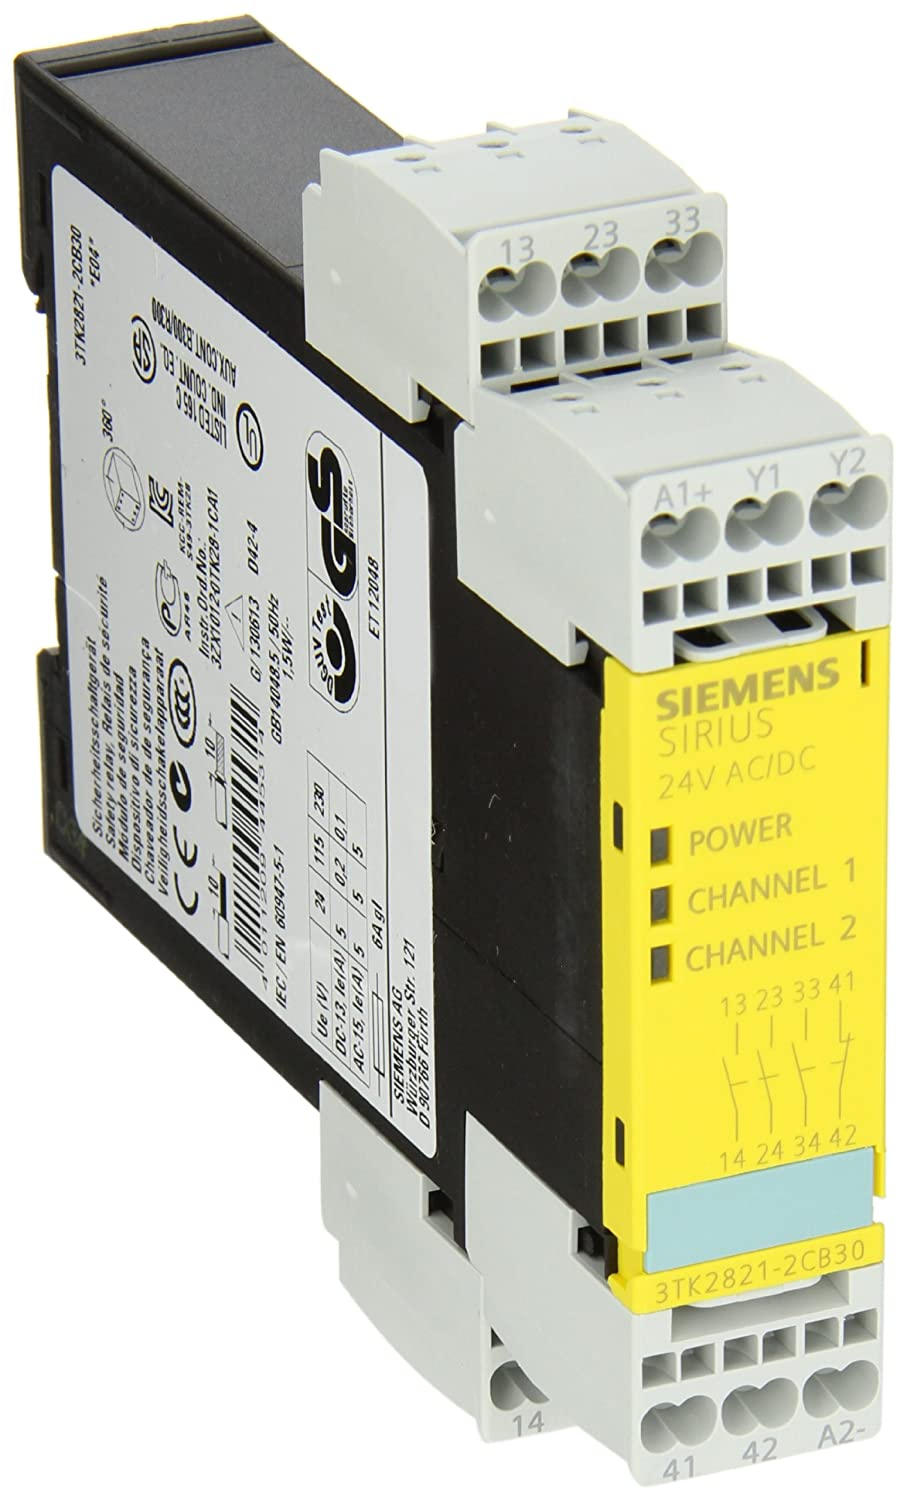 Siemens 3tk28 21 2cb30 Safety Relay For Emergency Stop And No Nc Contacts Of Protective Doors Autostart Spring Loaded Terminals 225mm Width 3 Enabling 1